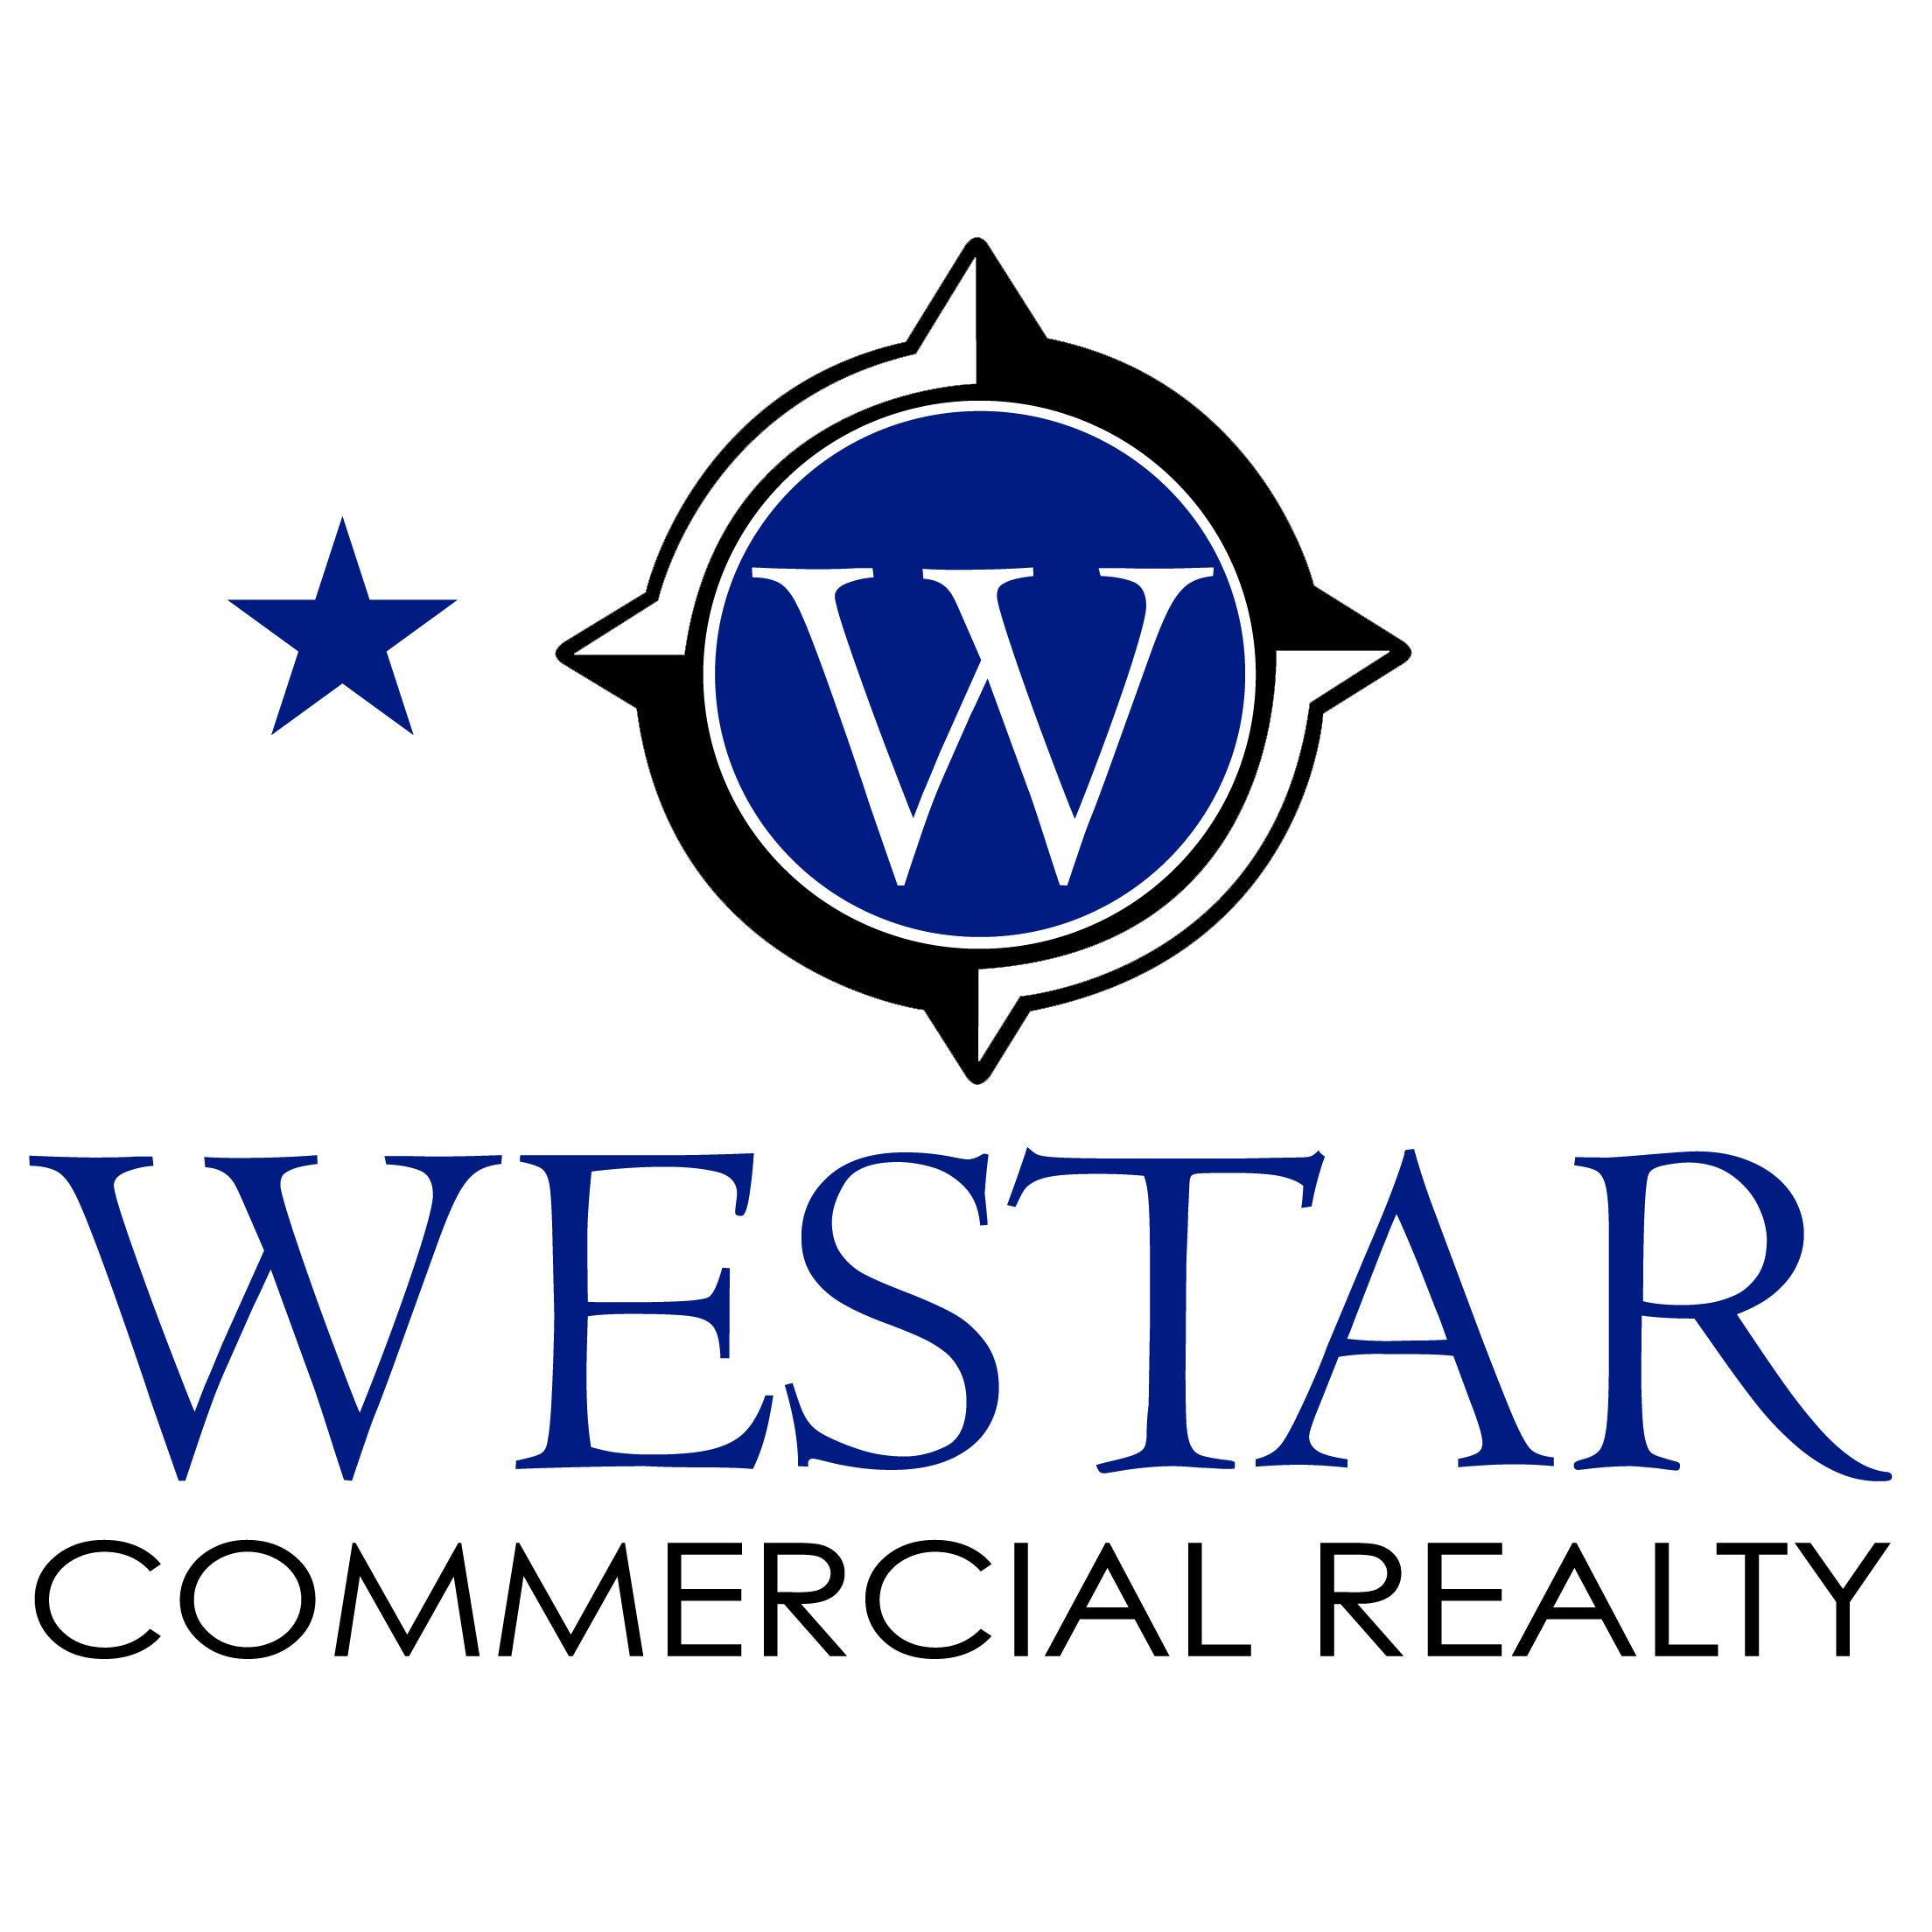 Westar Commercial Realty